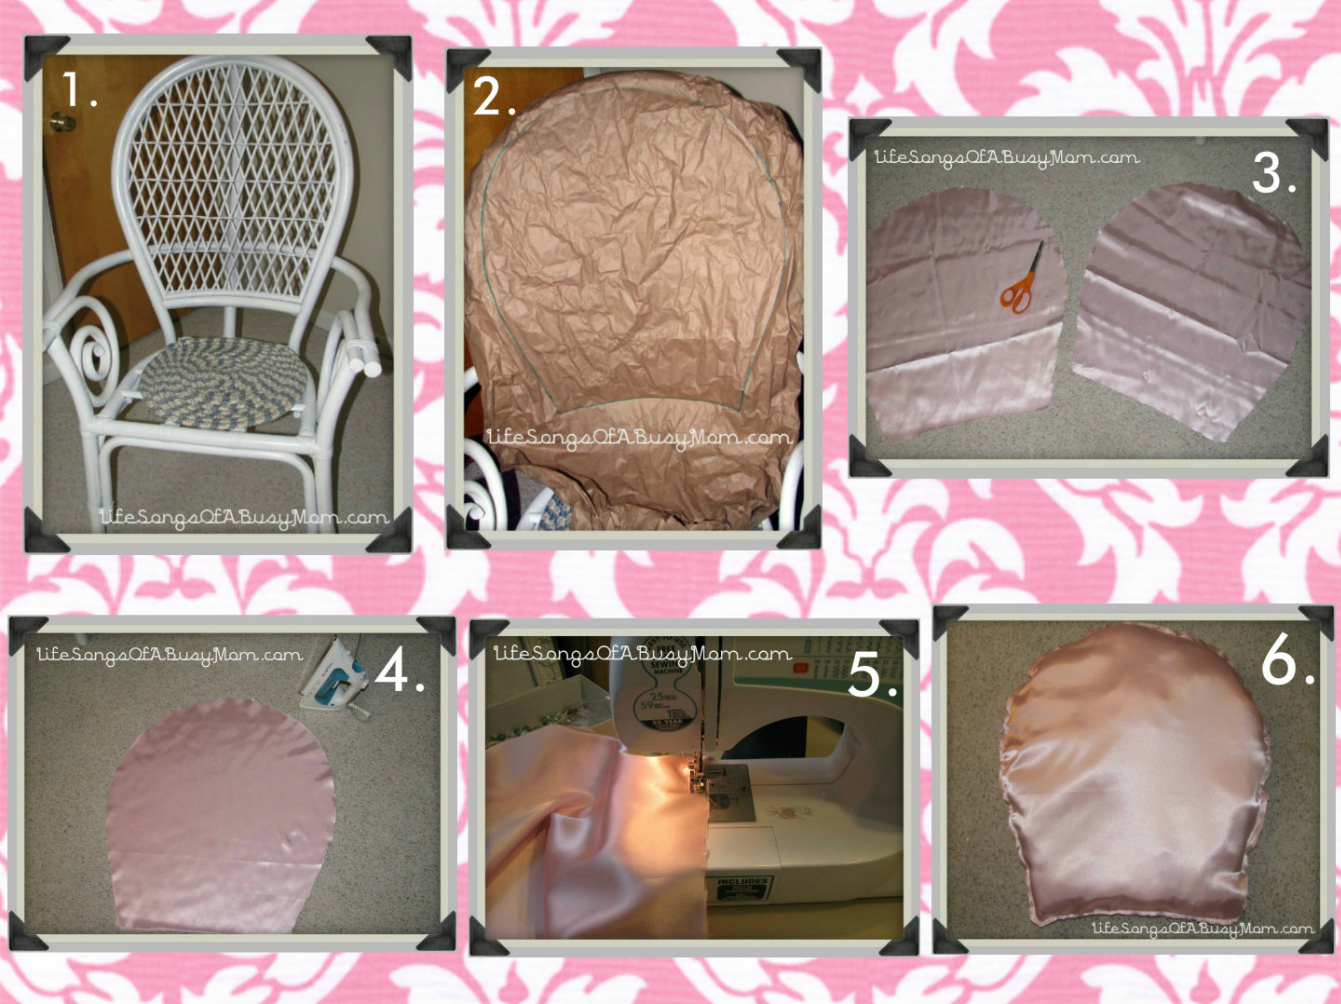 The white wicker chair minus the pink seat cushion